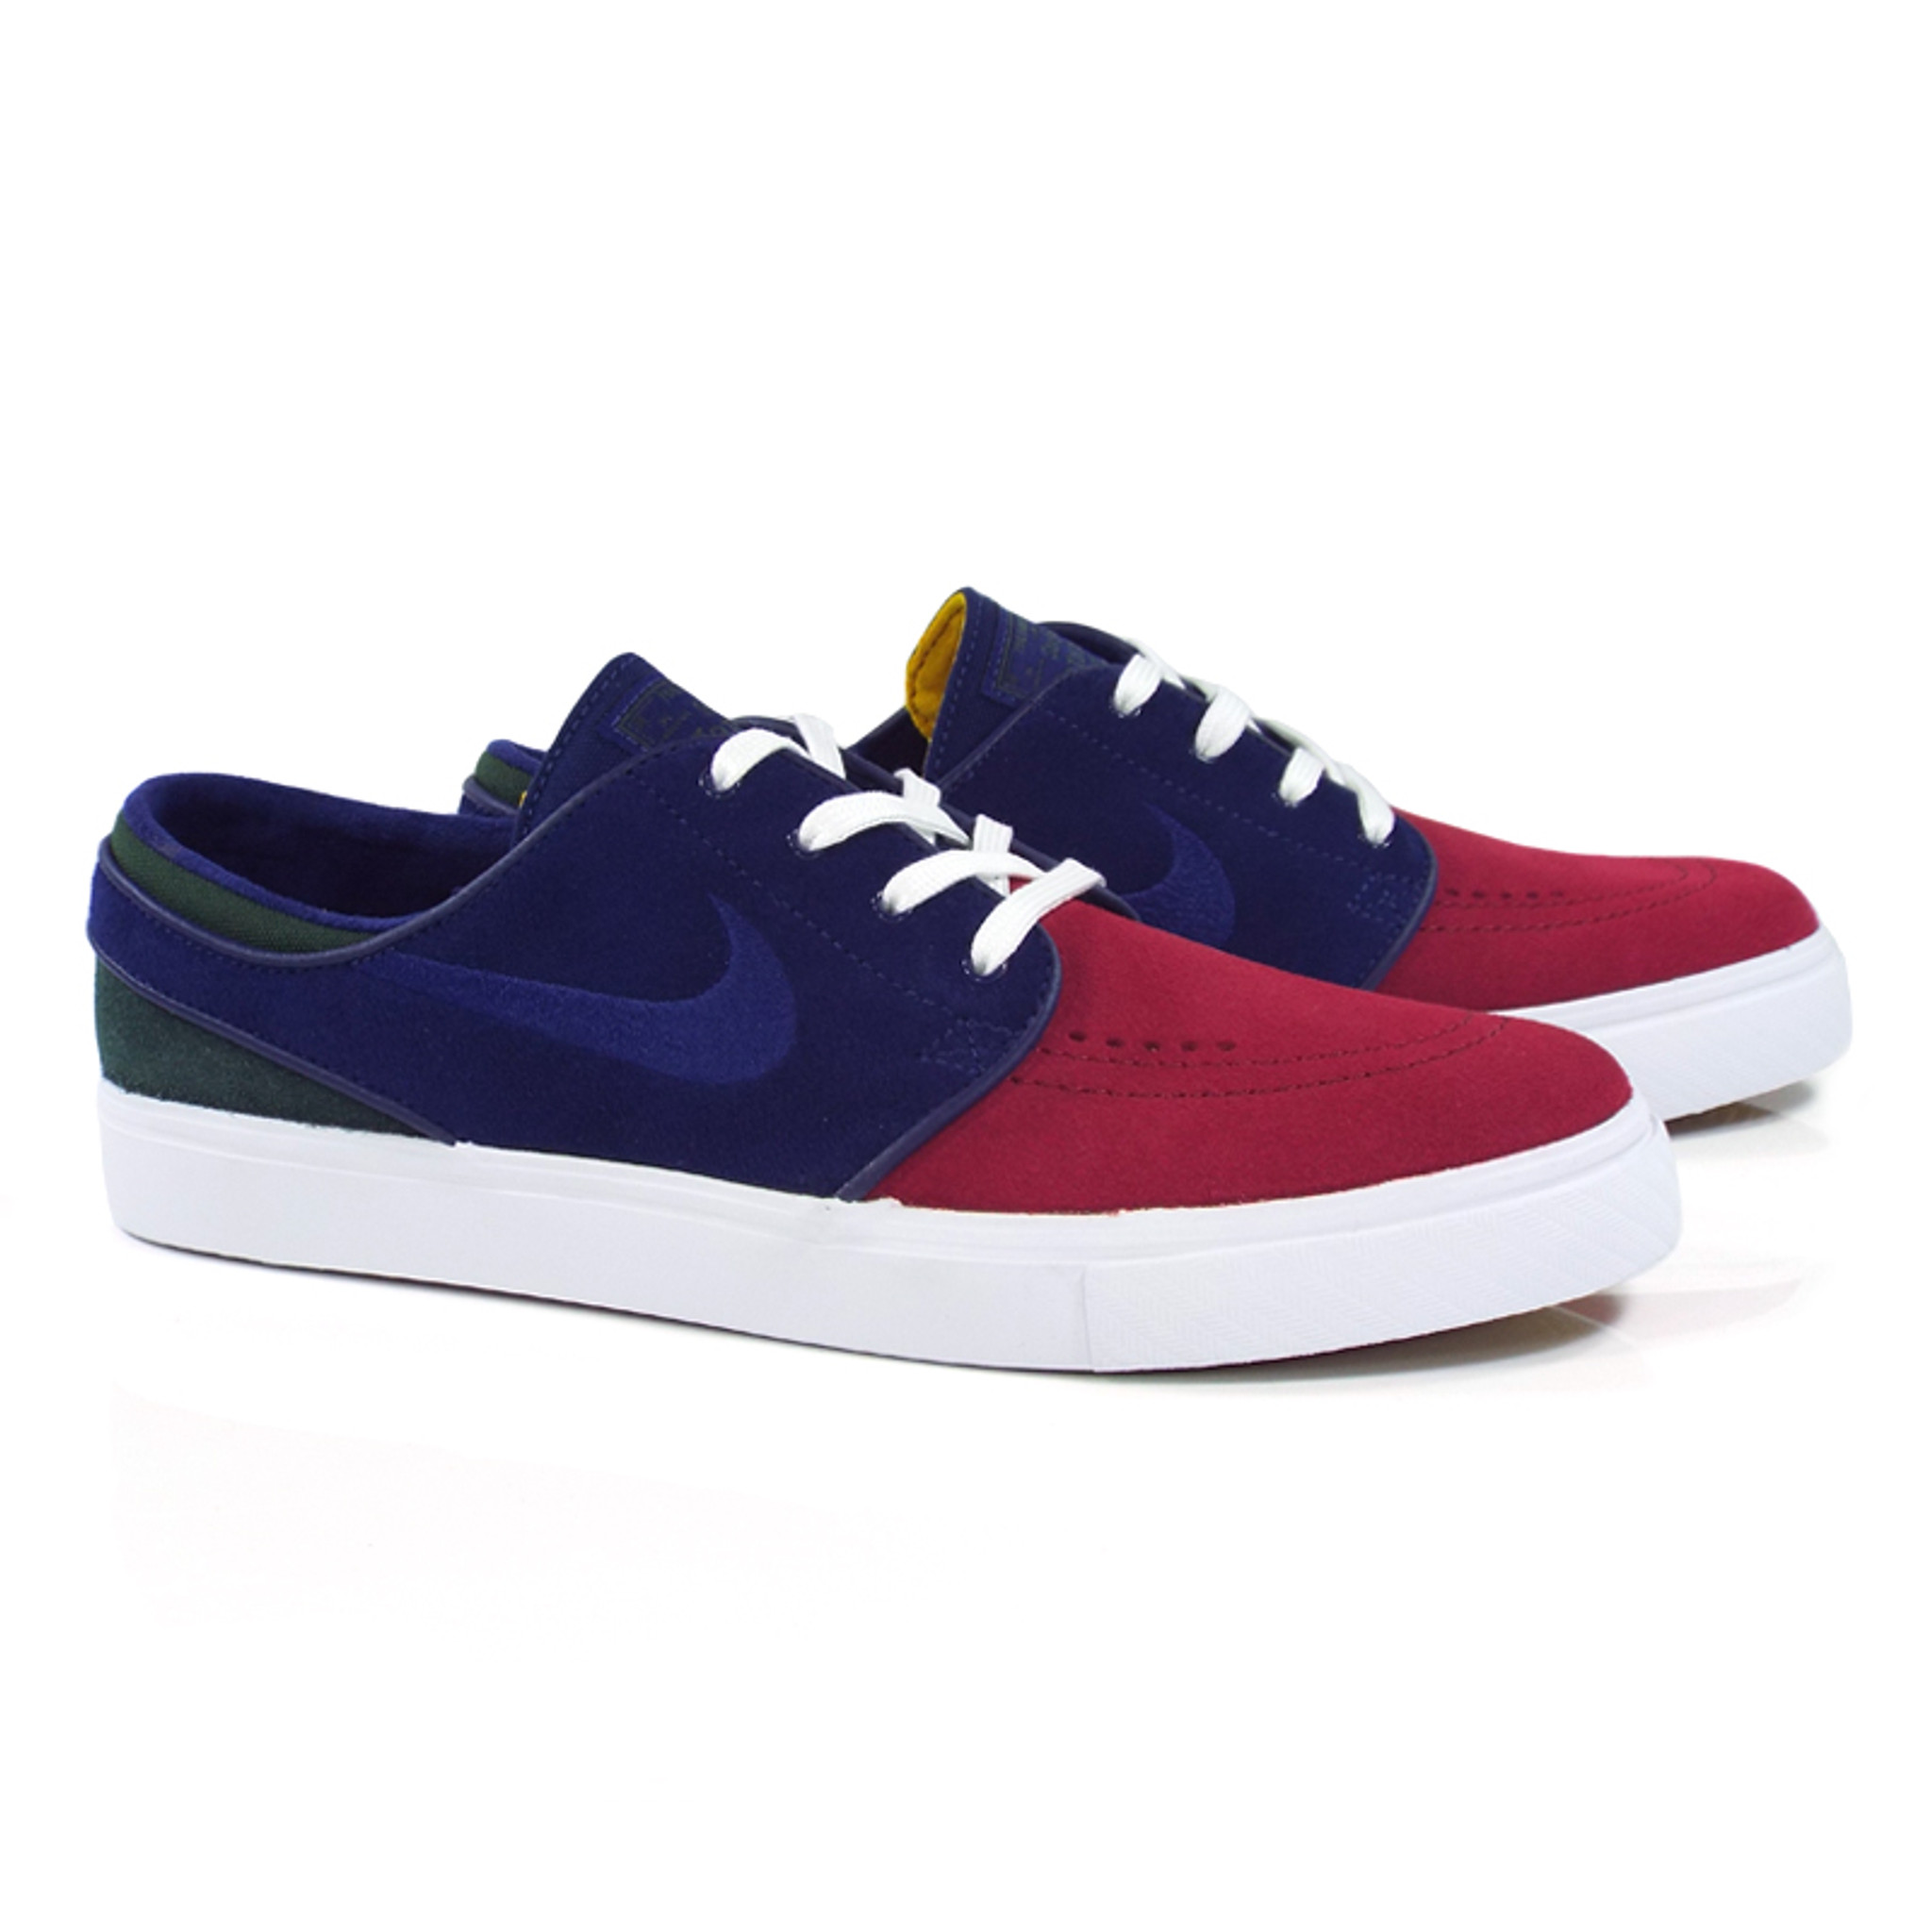 cartel dolor de muelas elefante  Nike SB Zoom Stefan Janoski Shoes - (Yacht Club) Red Crush/Blue Void-White-Midnight  Green - Detroit City Skateboards Co.